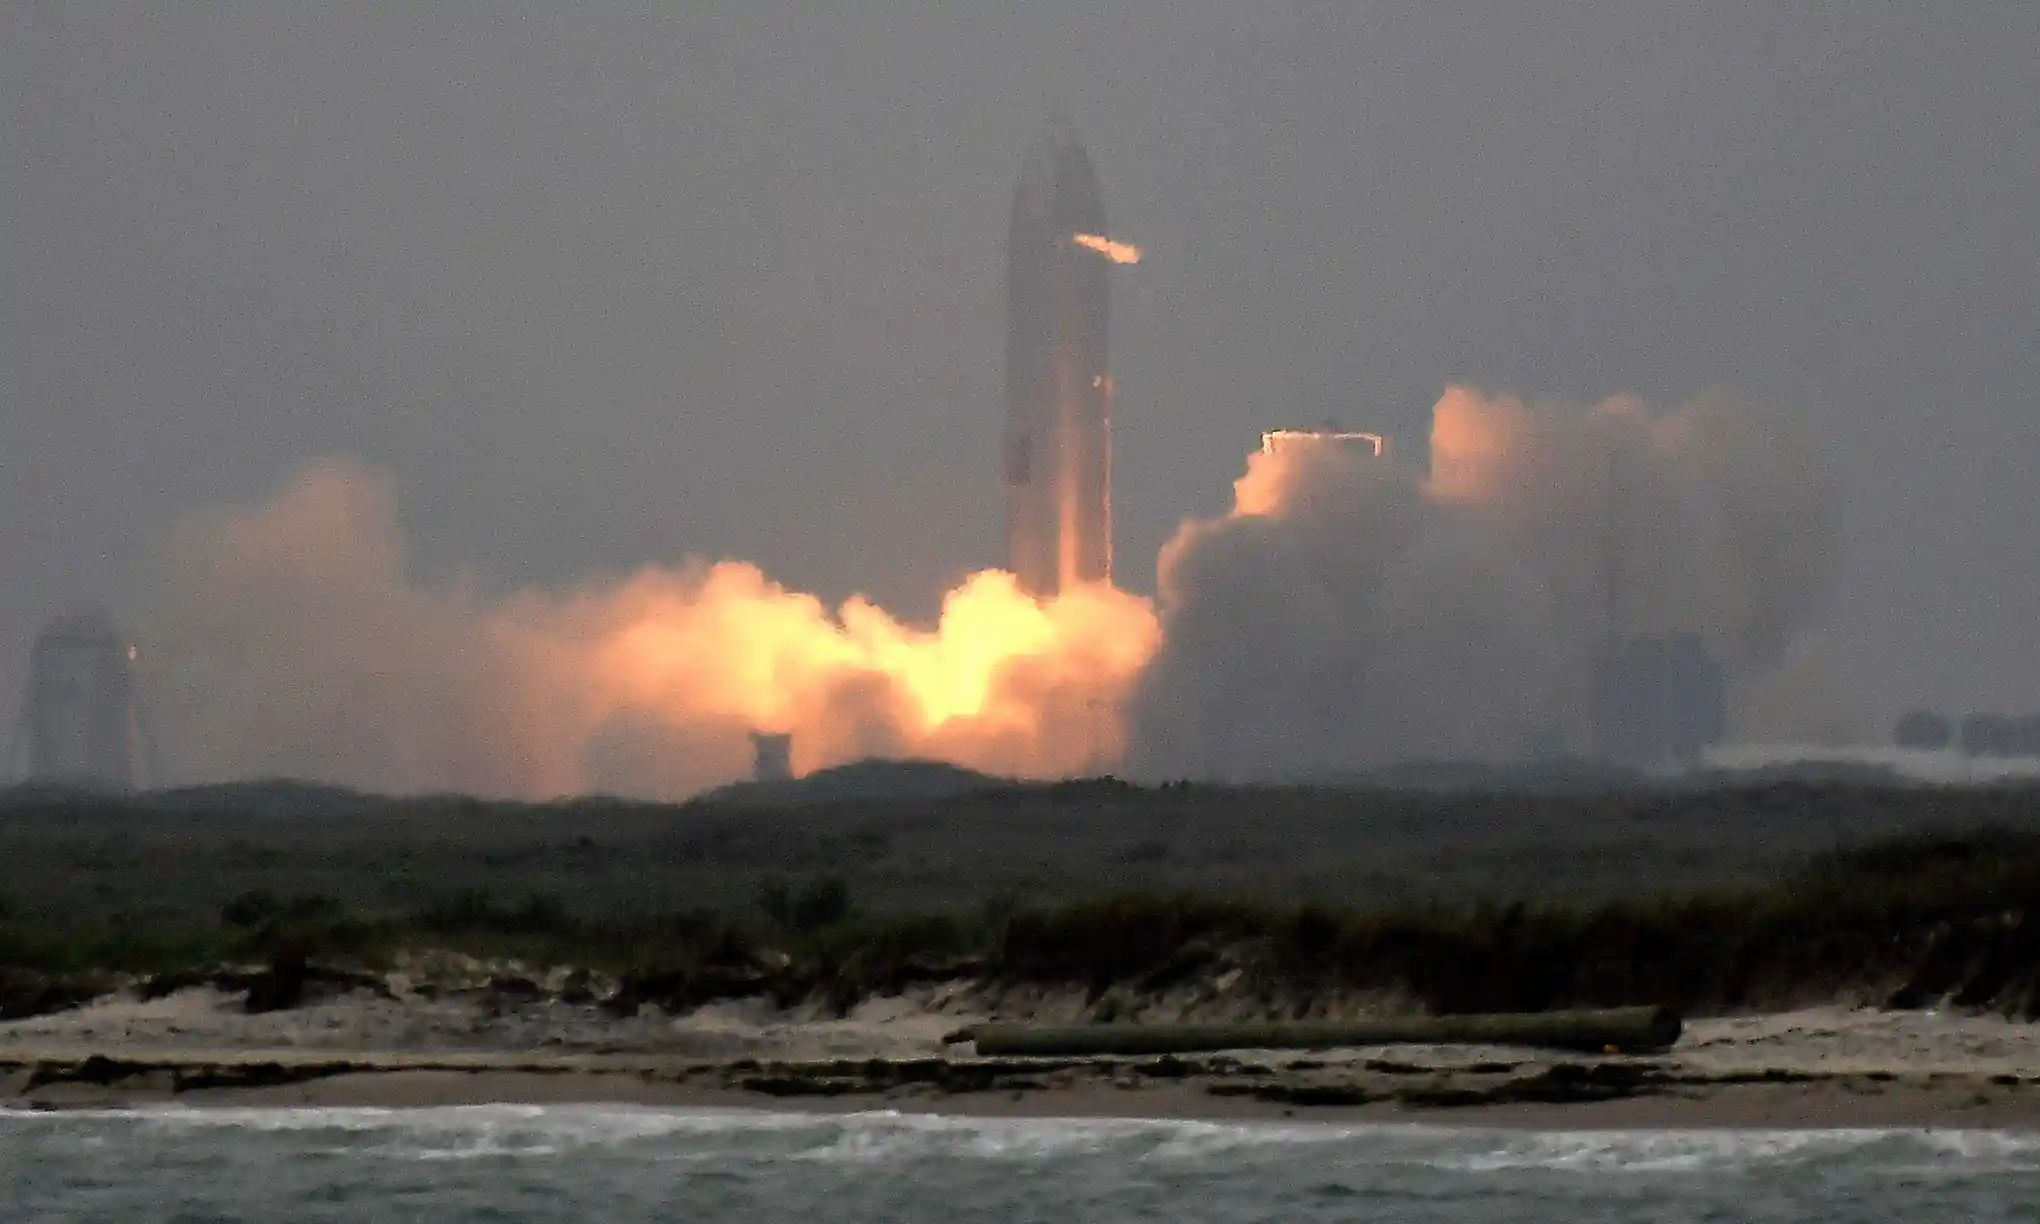 SpaceX test launches its SN15 Starship prototype on 5 May in Boca Chica, Texas. Photograph: Gene Blevins/ZUMA Wire/REX/Shutterstock